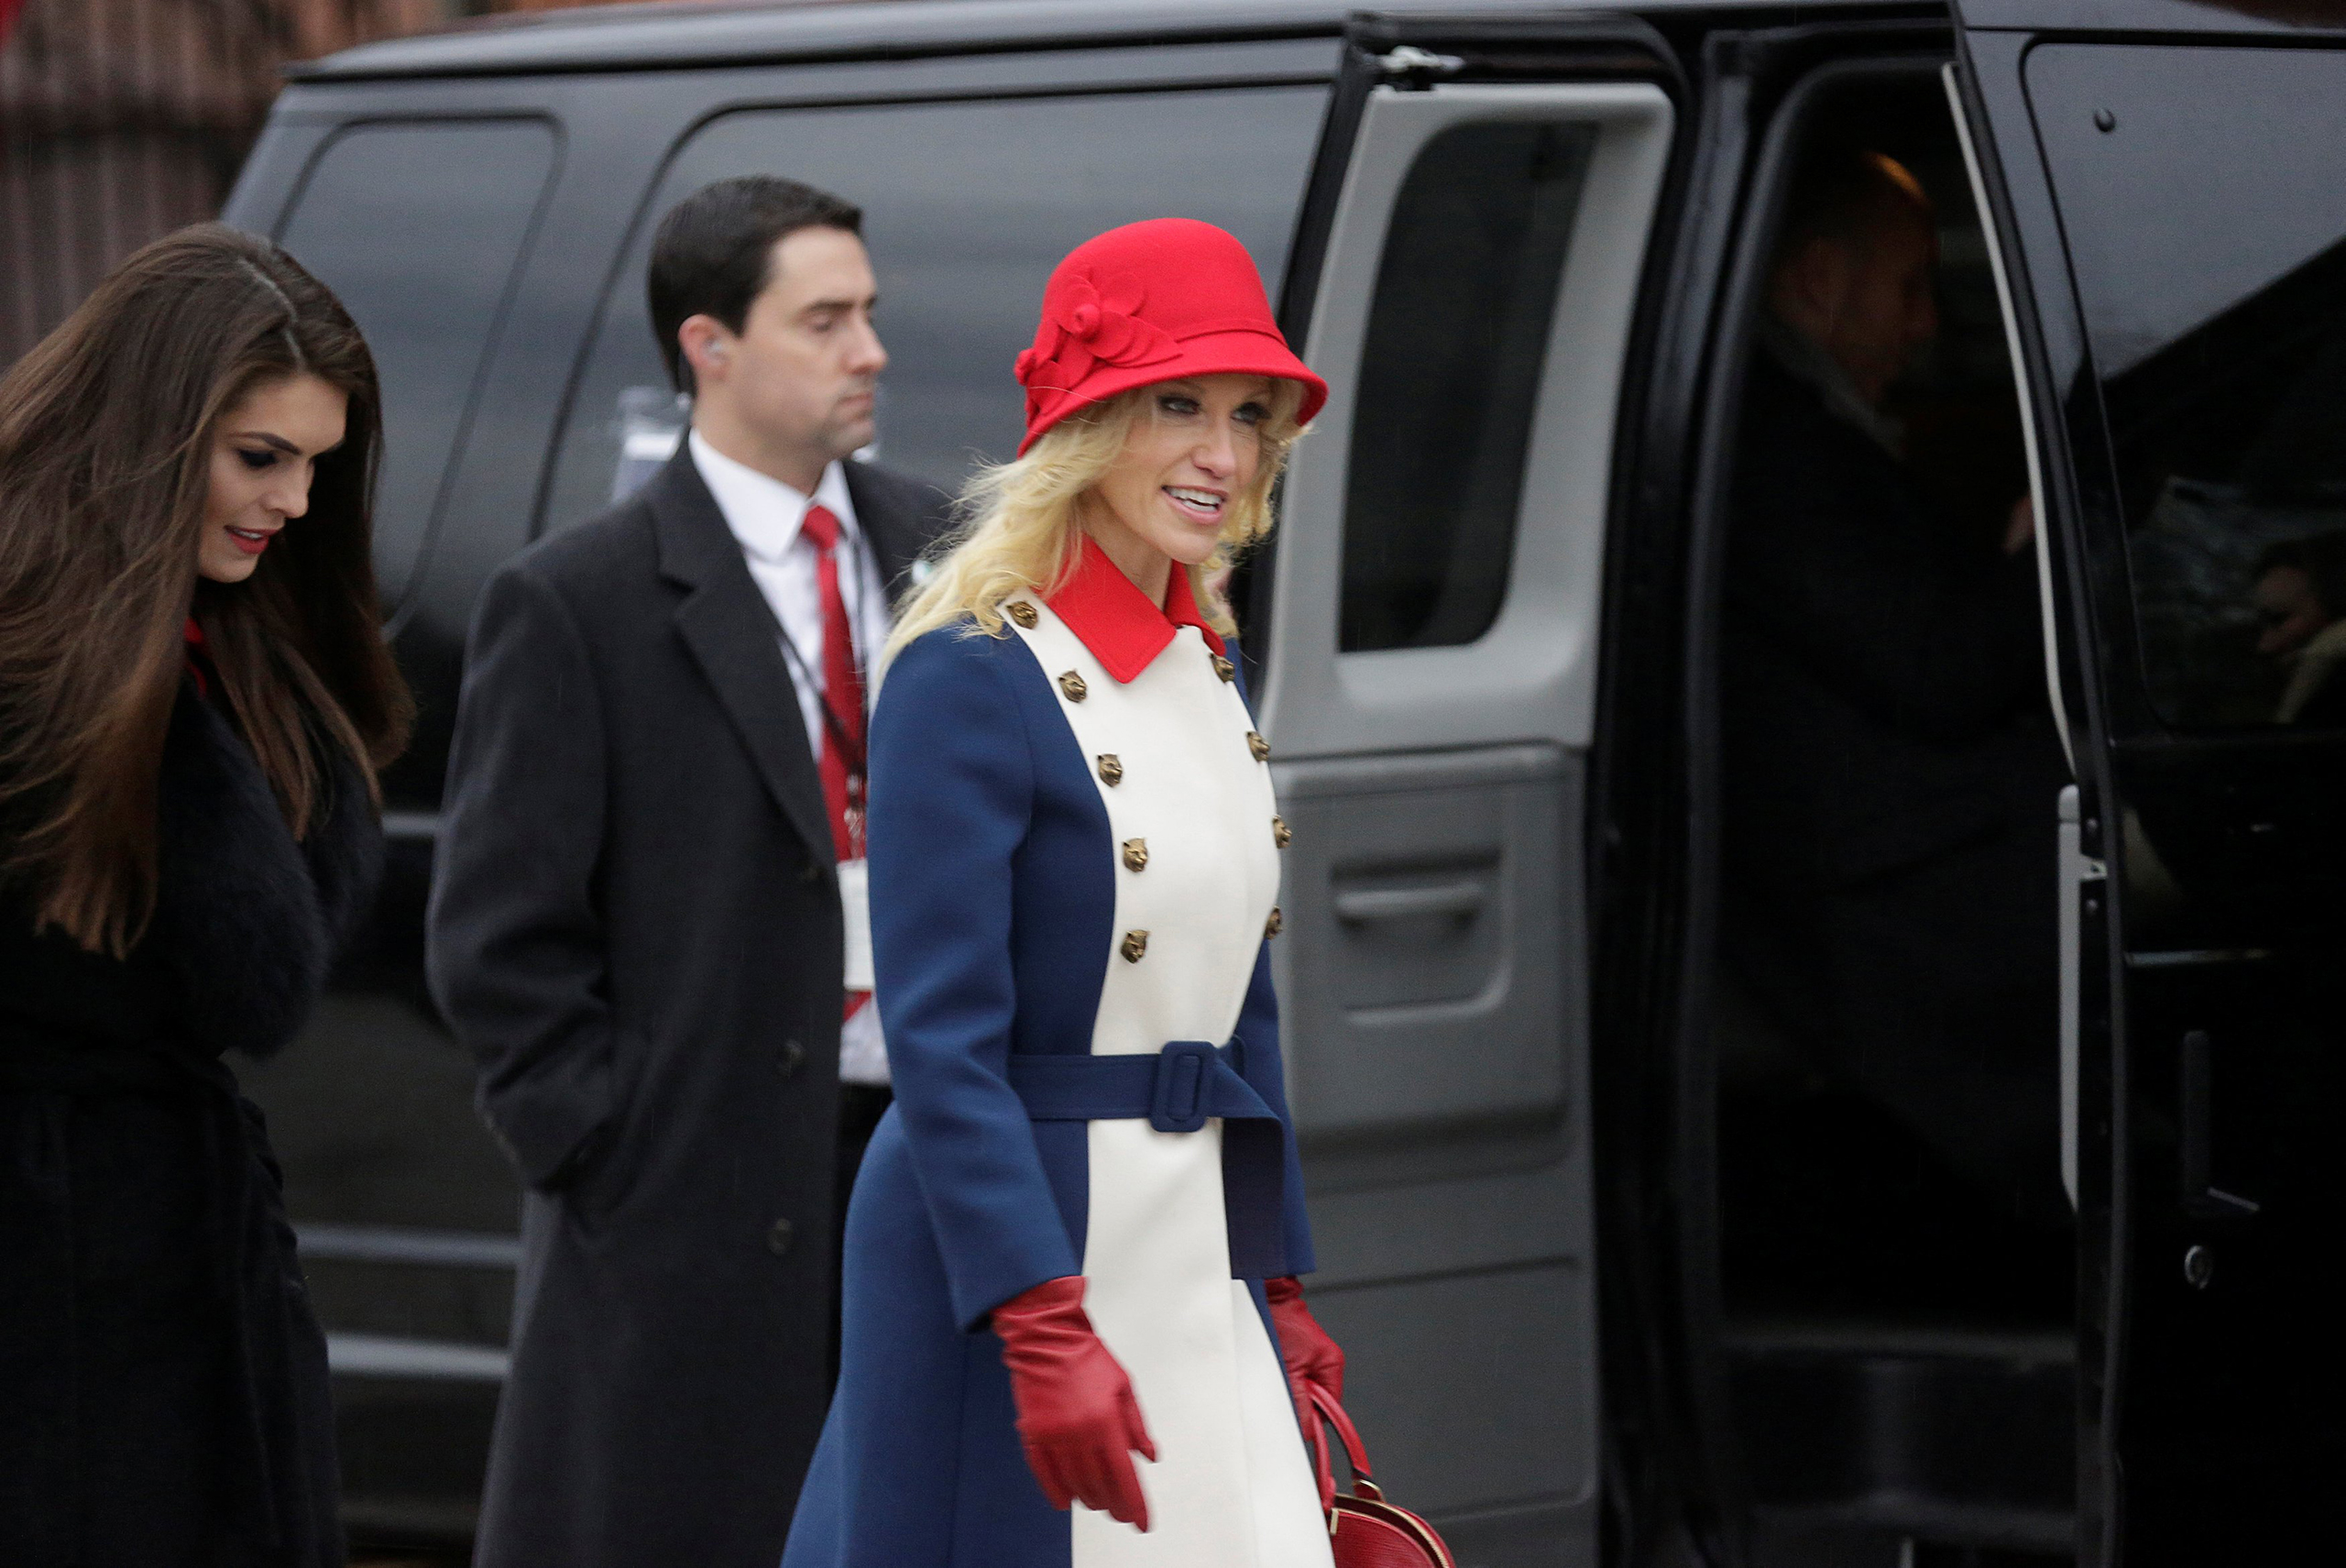 Kellyanne Conway, advisor to U.S. President-elect Donald Trump, departs for a church service before the 58th Presidential Inauguration in Washington, on Jan. 20, 2017.